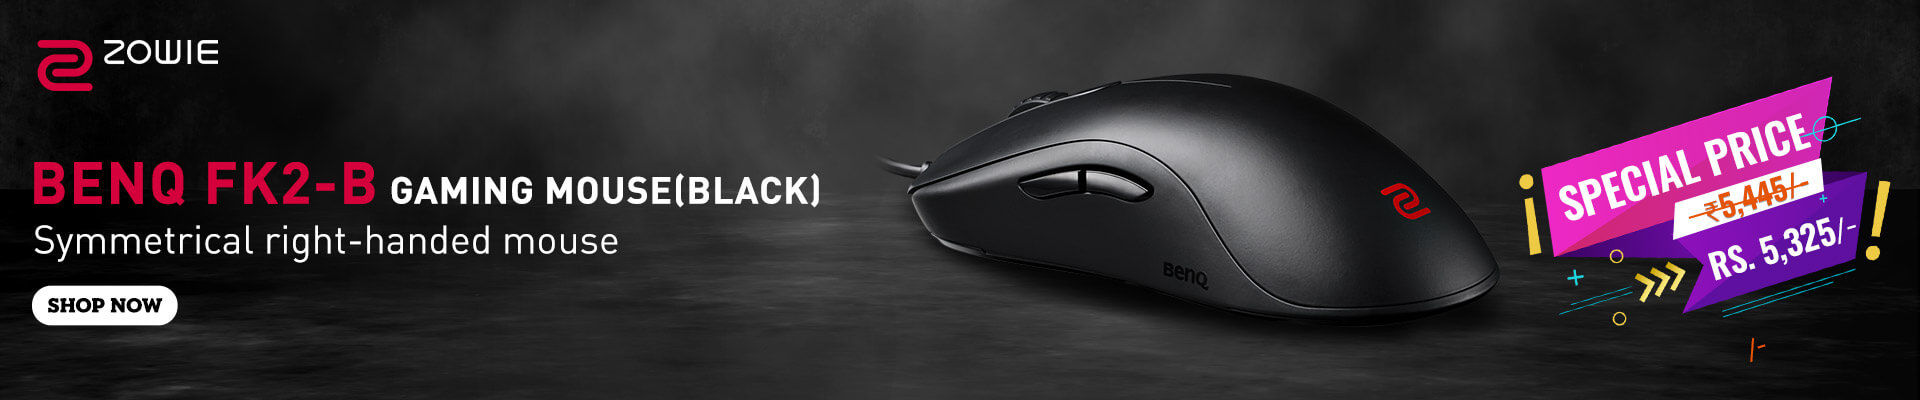 BenQ Zowie FK2-B Gaming Mouse (Black)